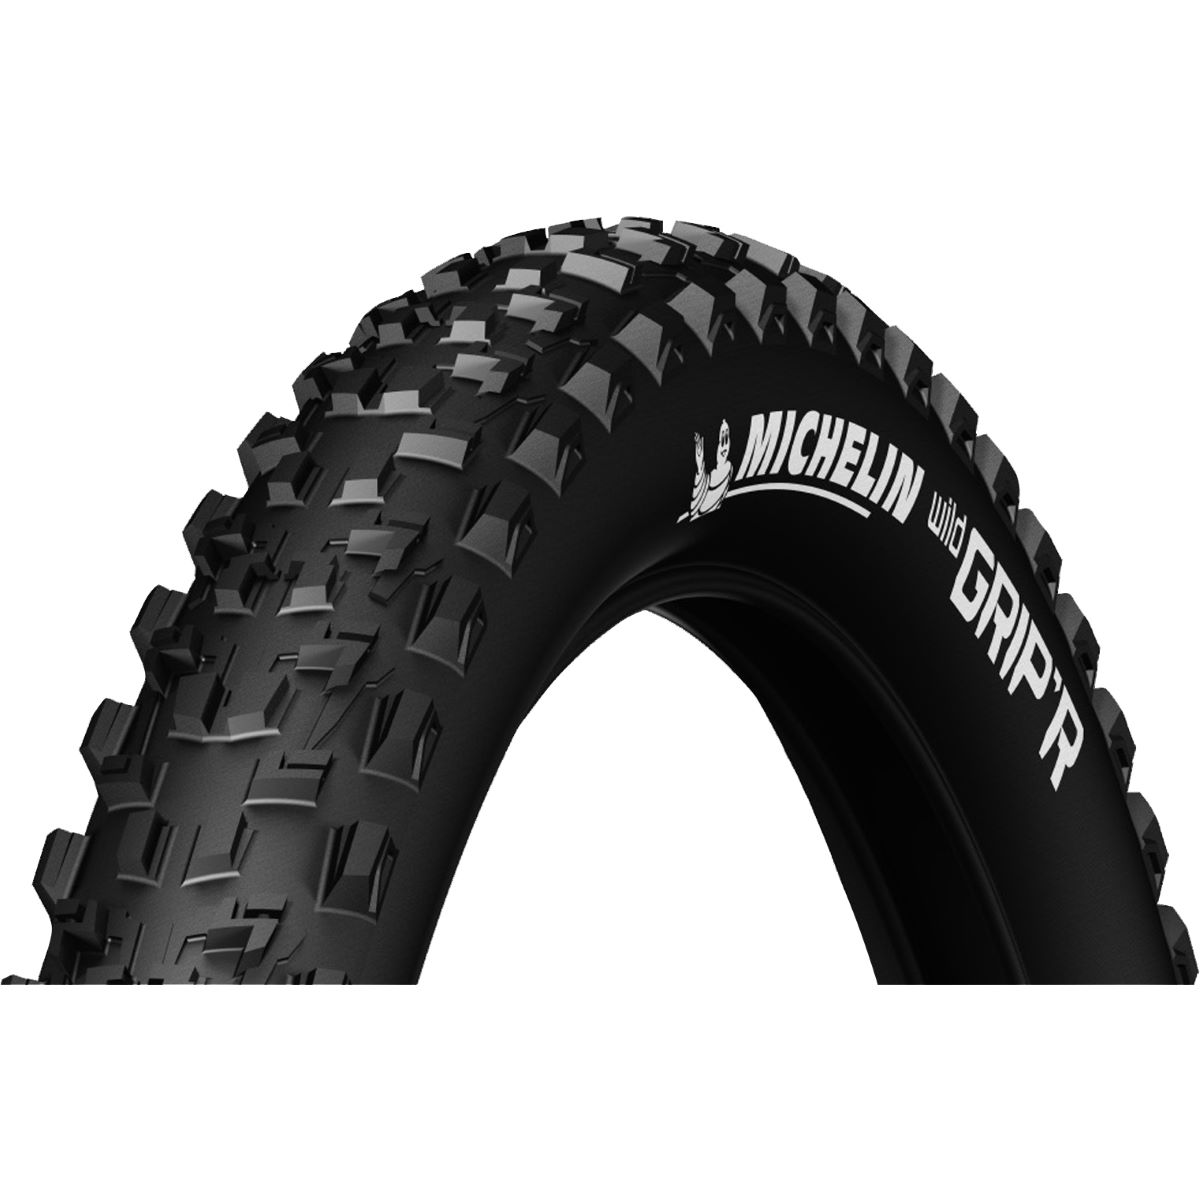 Pneu VTT Michelin Wild Grip'r Advanced 27,5 pouces (souple) - Noir